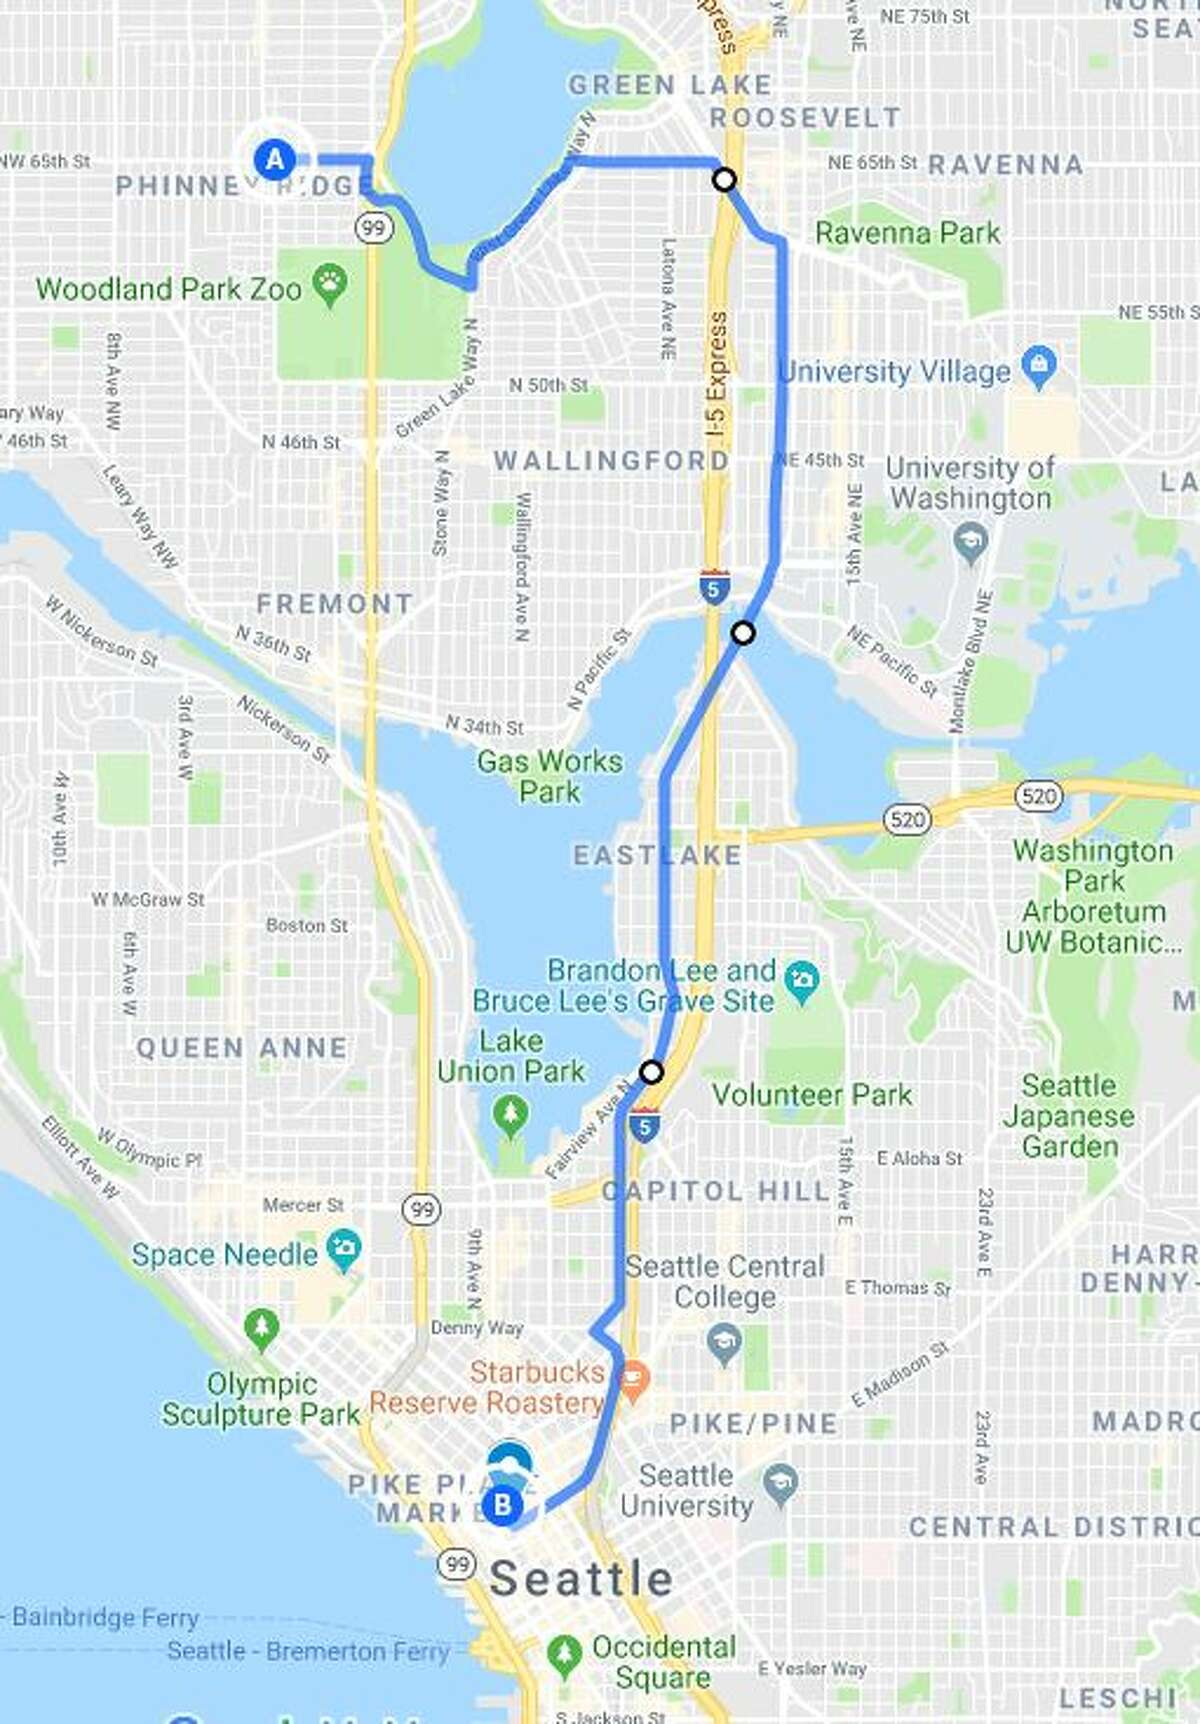 From northwest Seattle you can also hug Green Lake until you get to Ravenna, then use Roosevelt Way Northeast to the University Bridge and Eastlake Avenue East to get downtown.